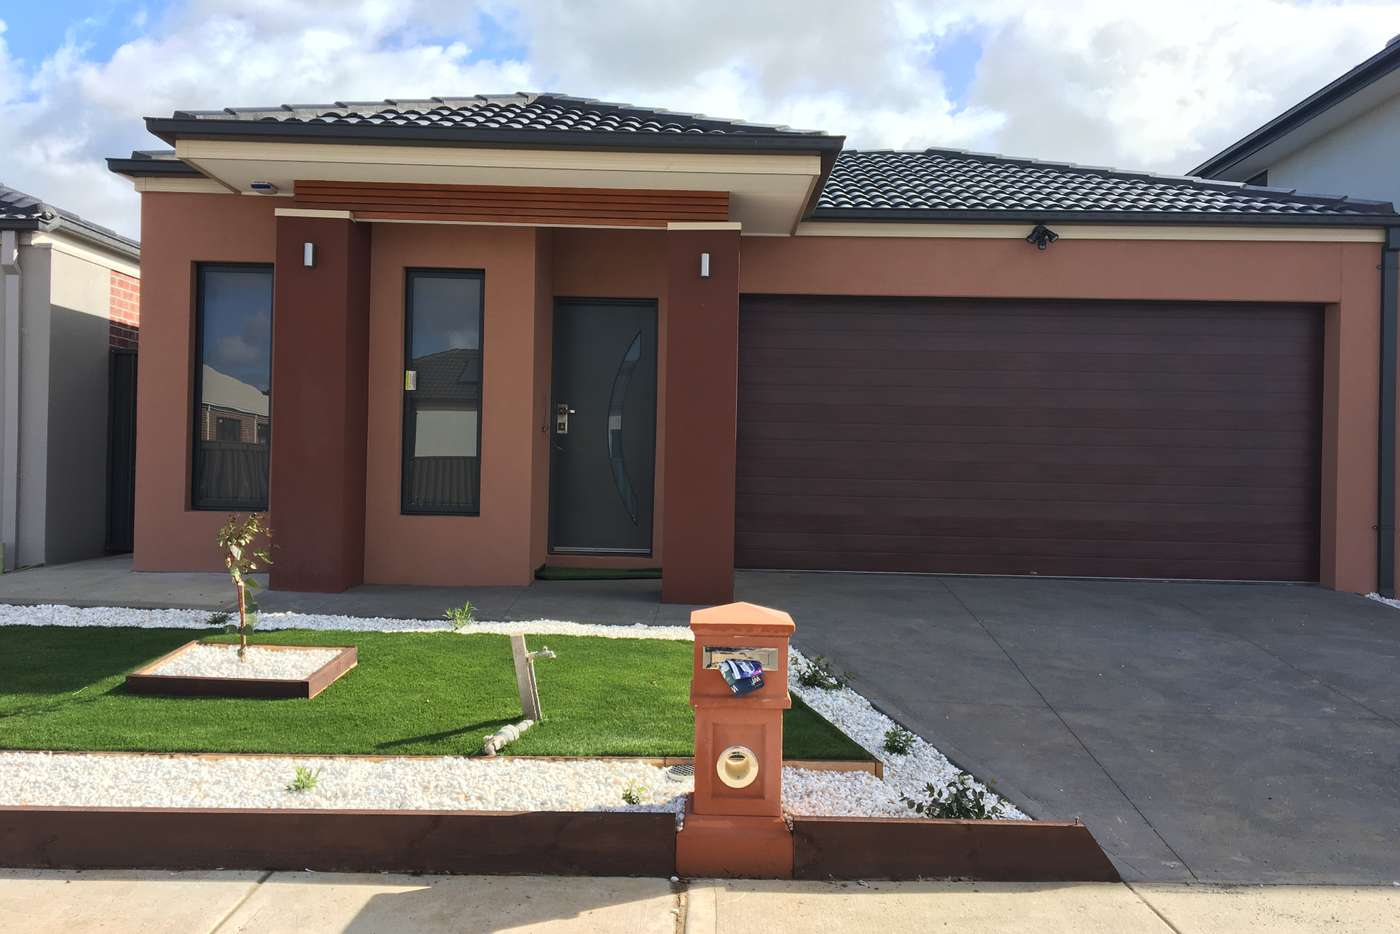 Main view of Homely house listing, 39 Montia Street, Tarneit VIC 3029